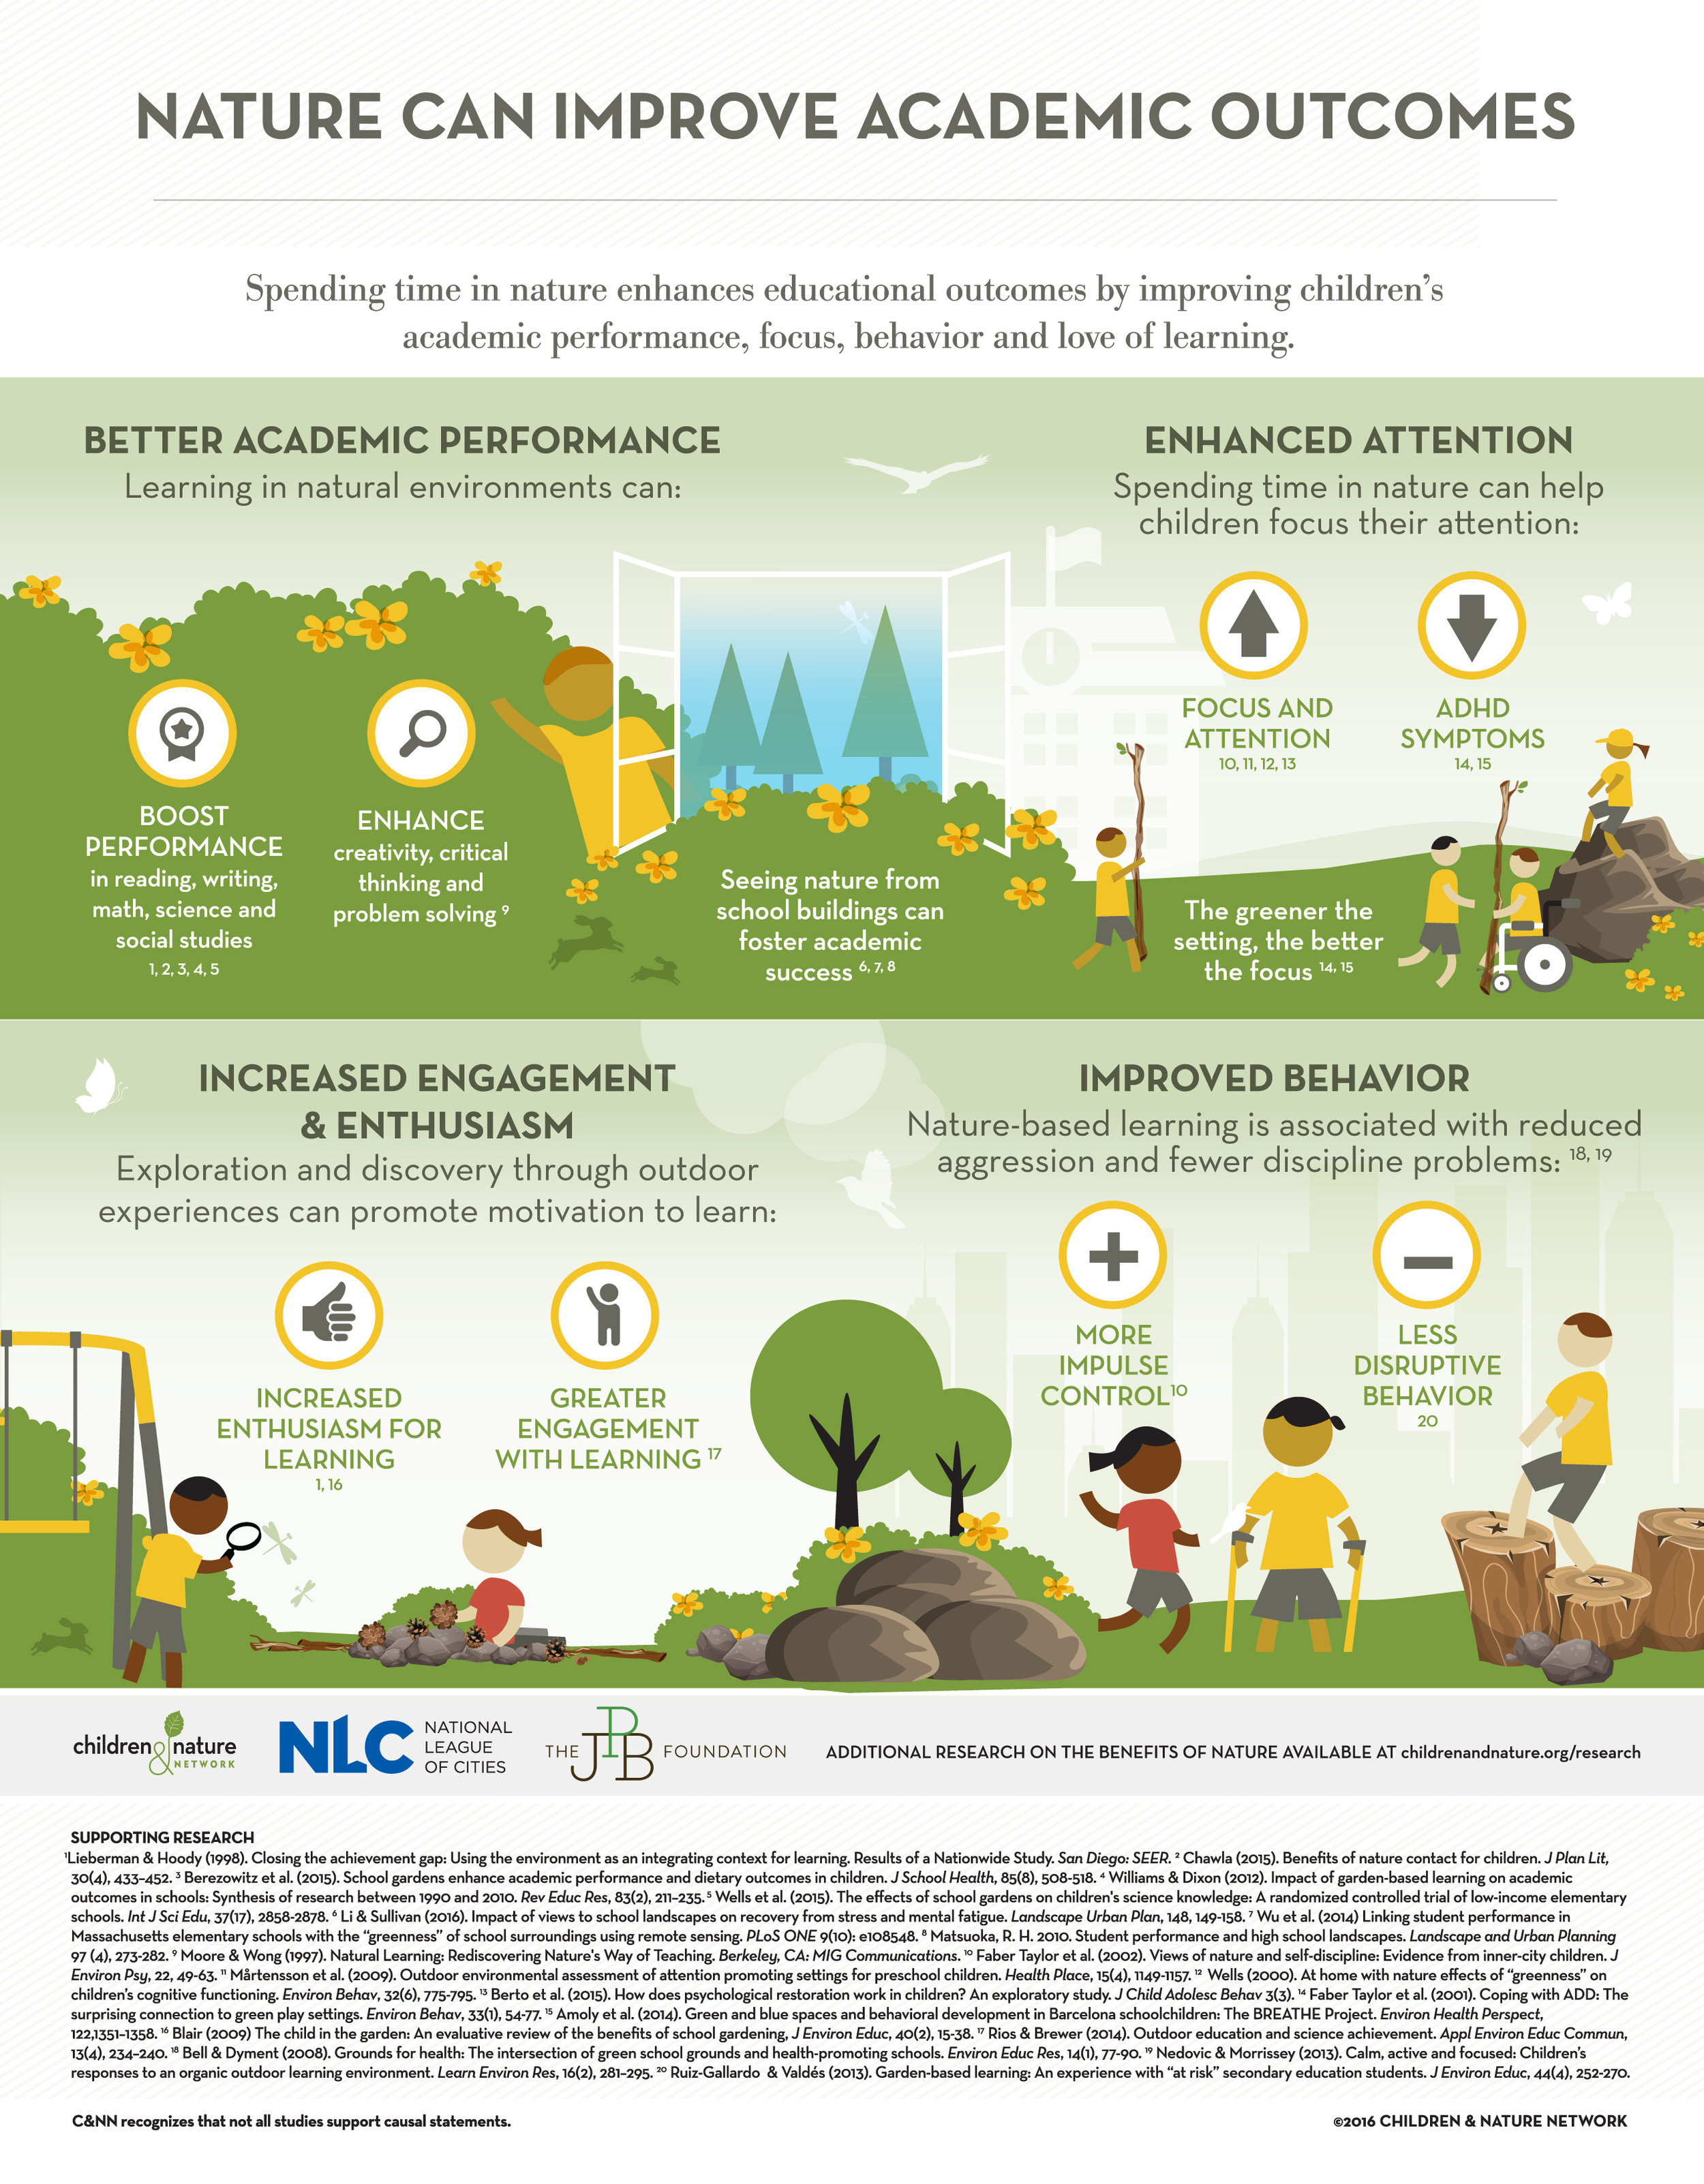 Click to enlarge. Image: Children and Nature Network.